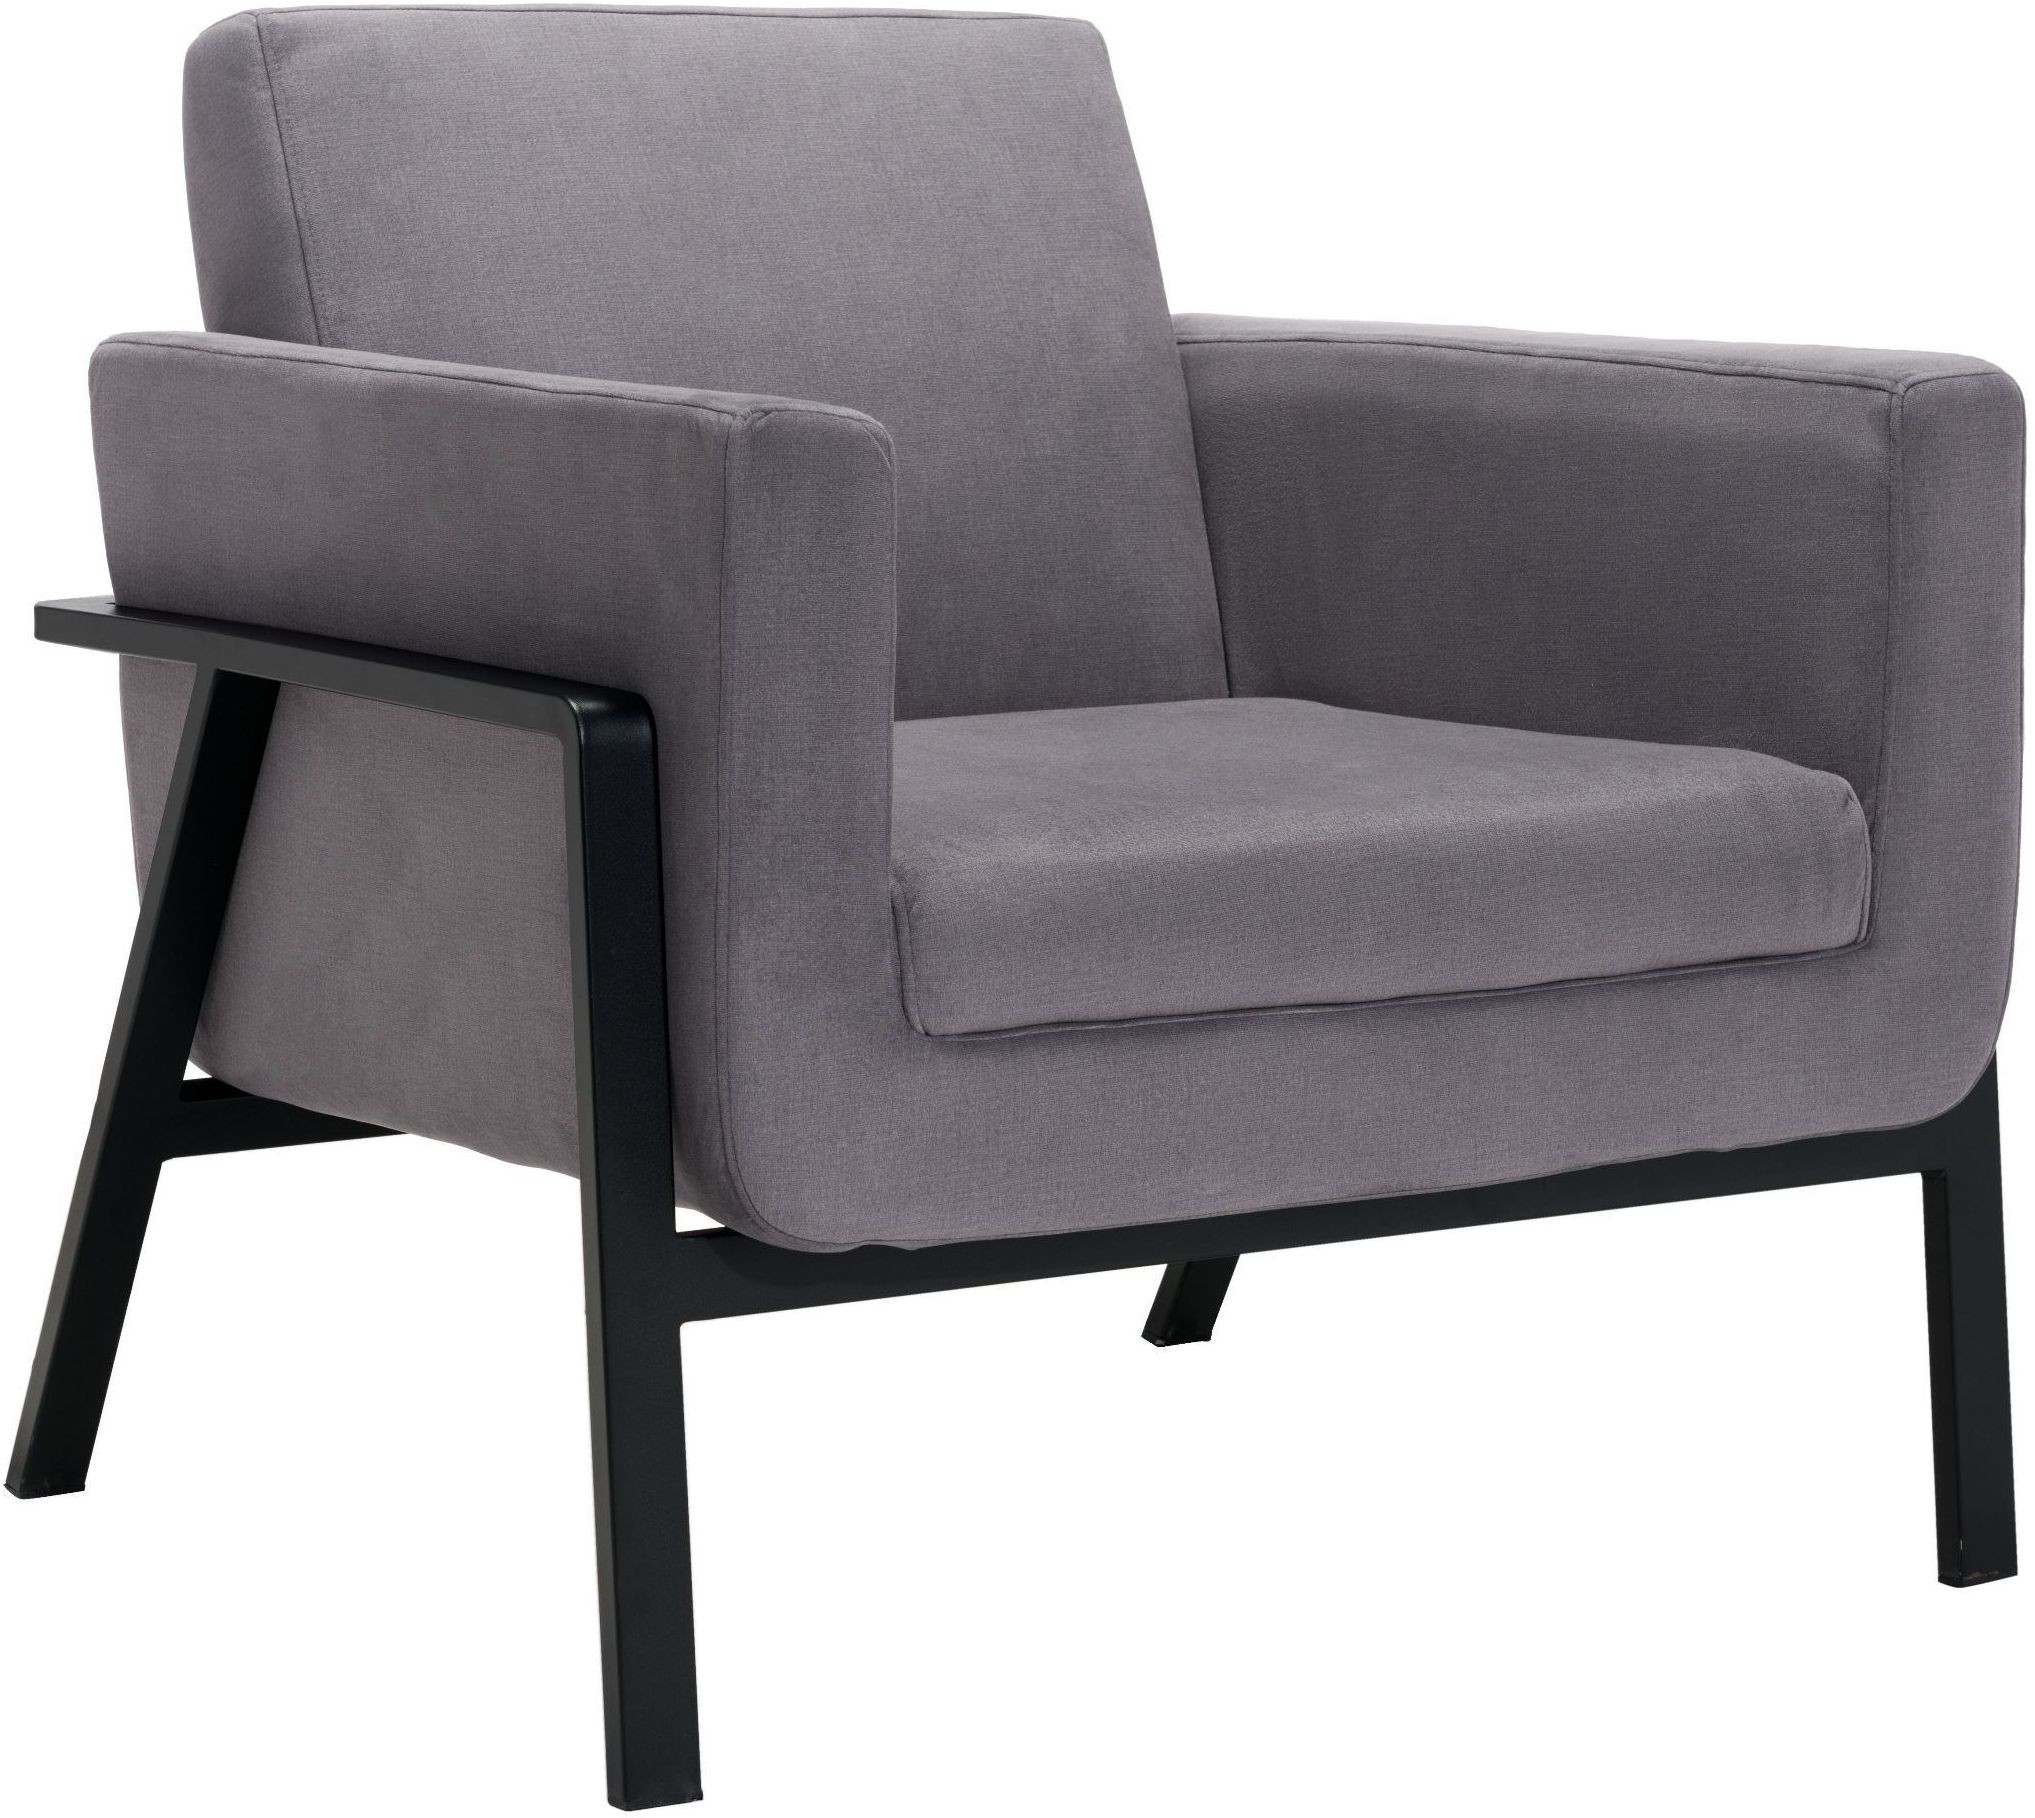 grey lounge chair white wishbone replica homestead gray from zuo coleman furniture